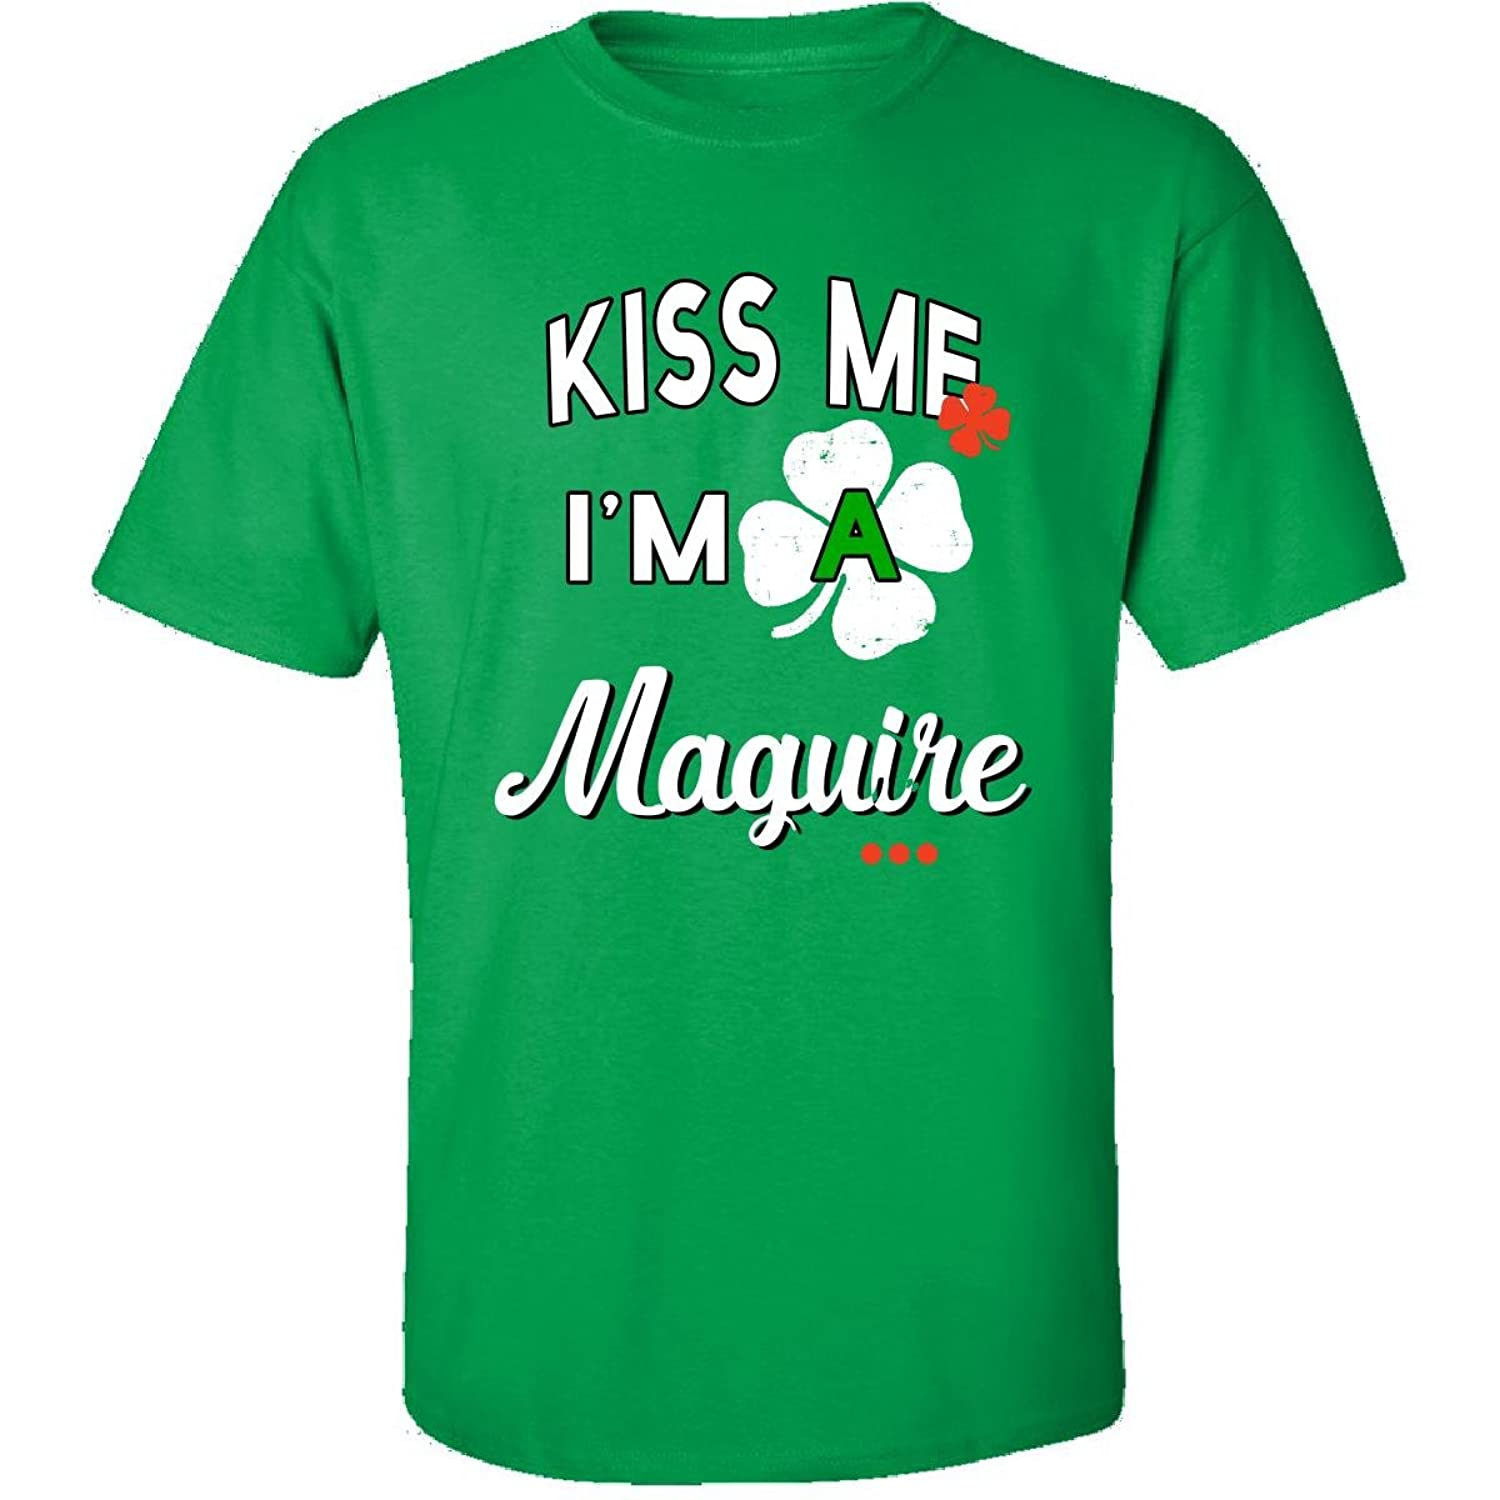 Funny St Patricks Day Irish Gift - Kiss Me Im A Maguire - Adult Shirt